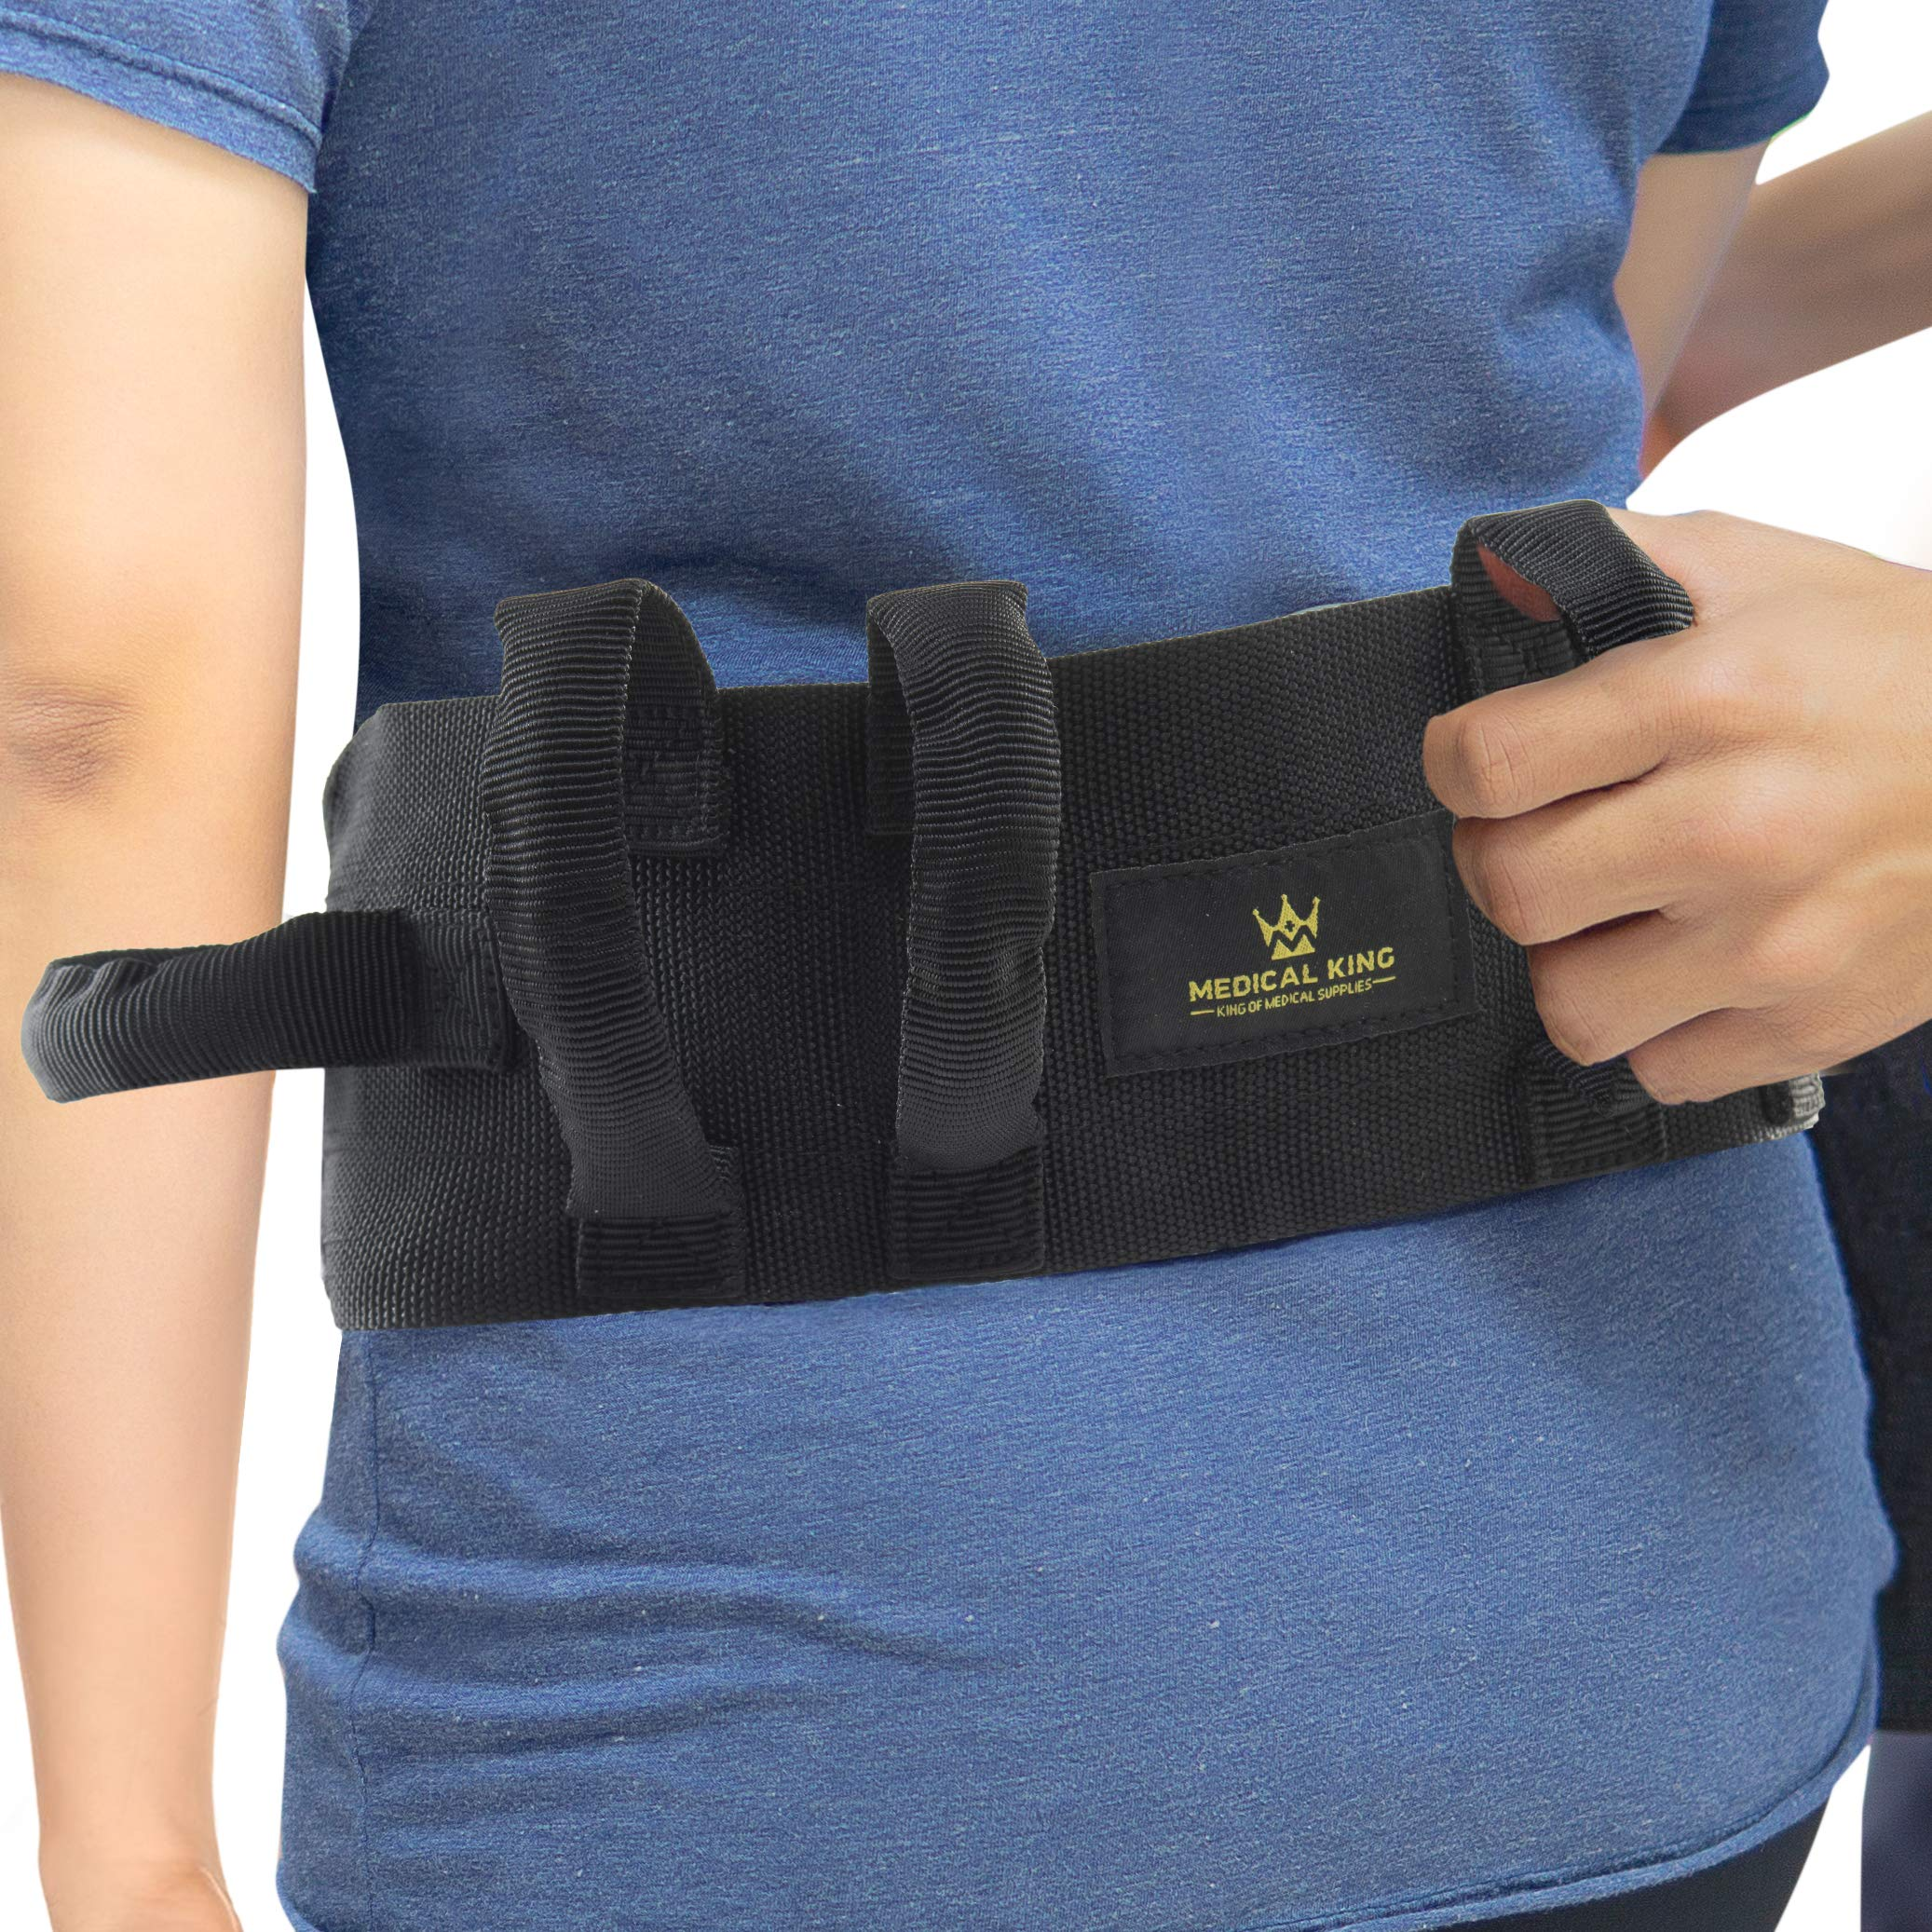 """Transfer Belt Fle to unlock - 55"""" holds up 500 LBS - or Lifting Seniors - Gait Belt With 6 Handles - Great lift belt for elderly, therapy, handicap etc. walking and standing - easy buckBy medical king"""